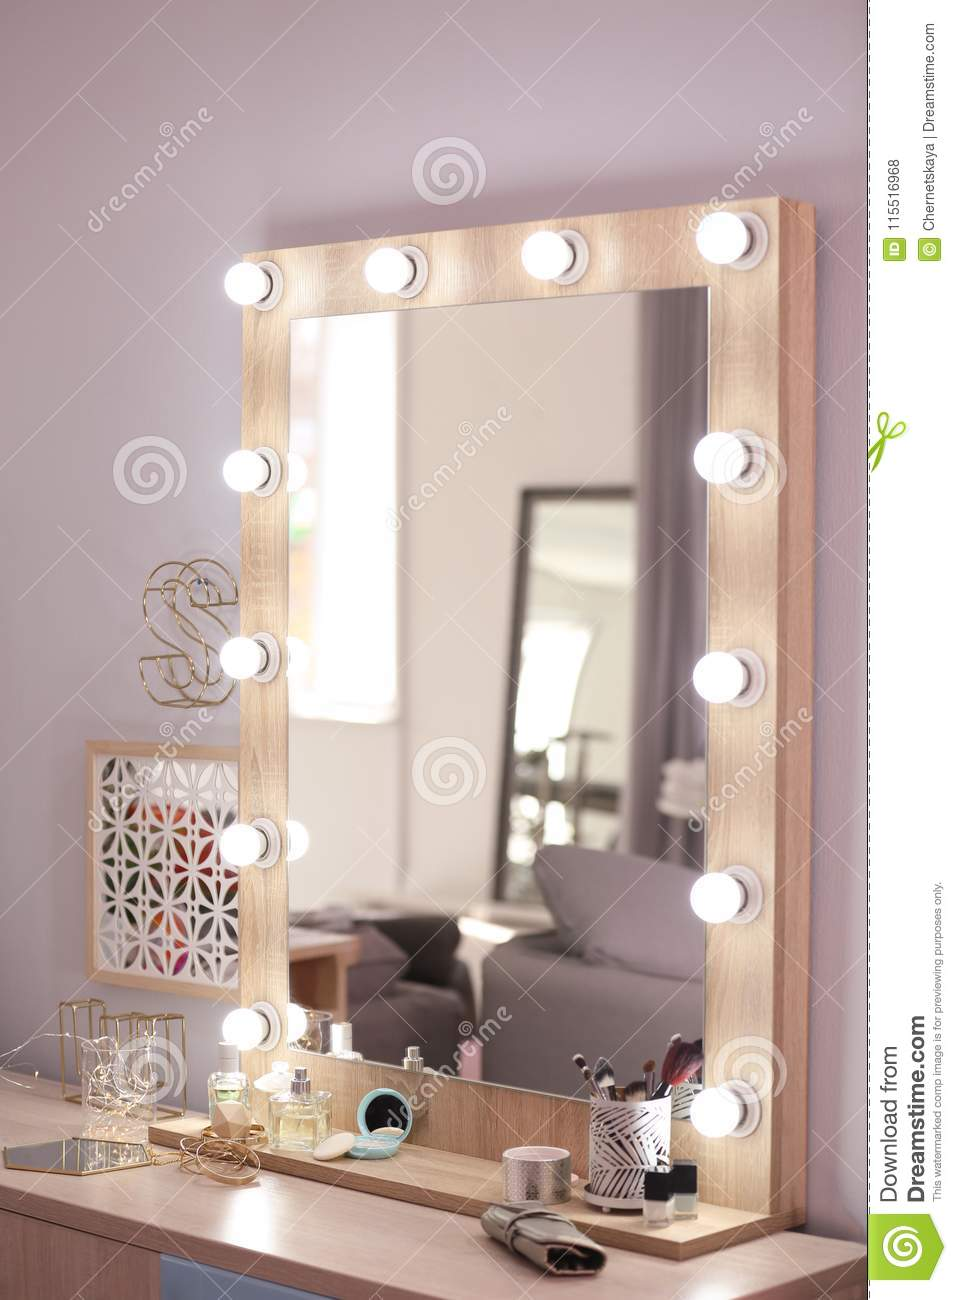 Mirror With Light Bulbs And Cosmetic Products Stock Photo Image Of